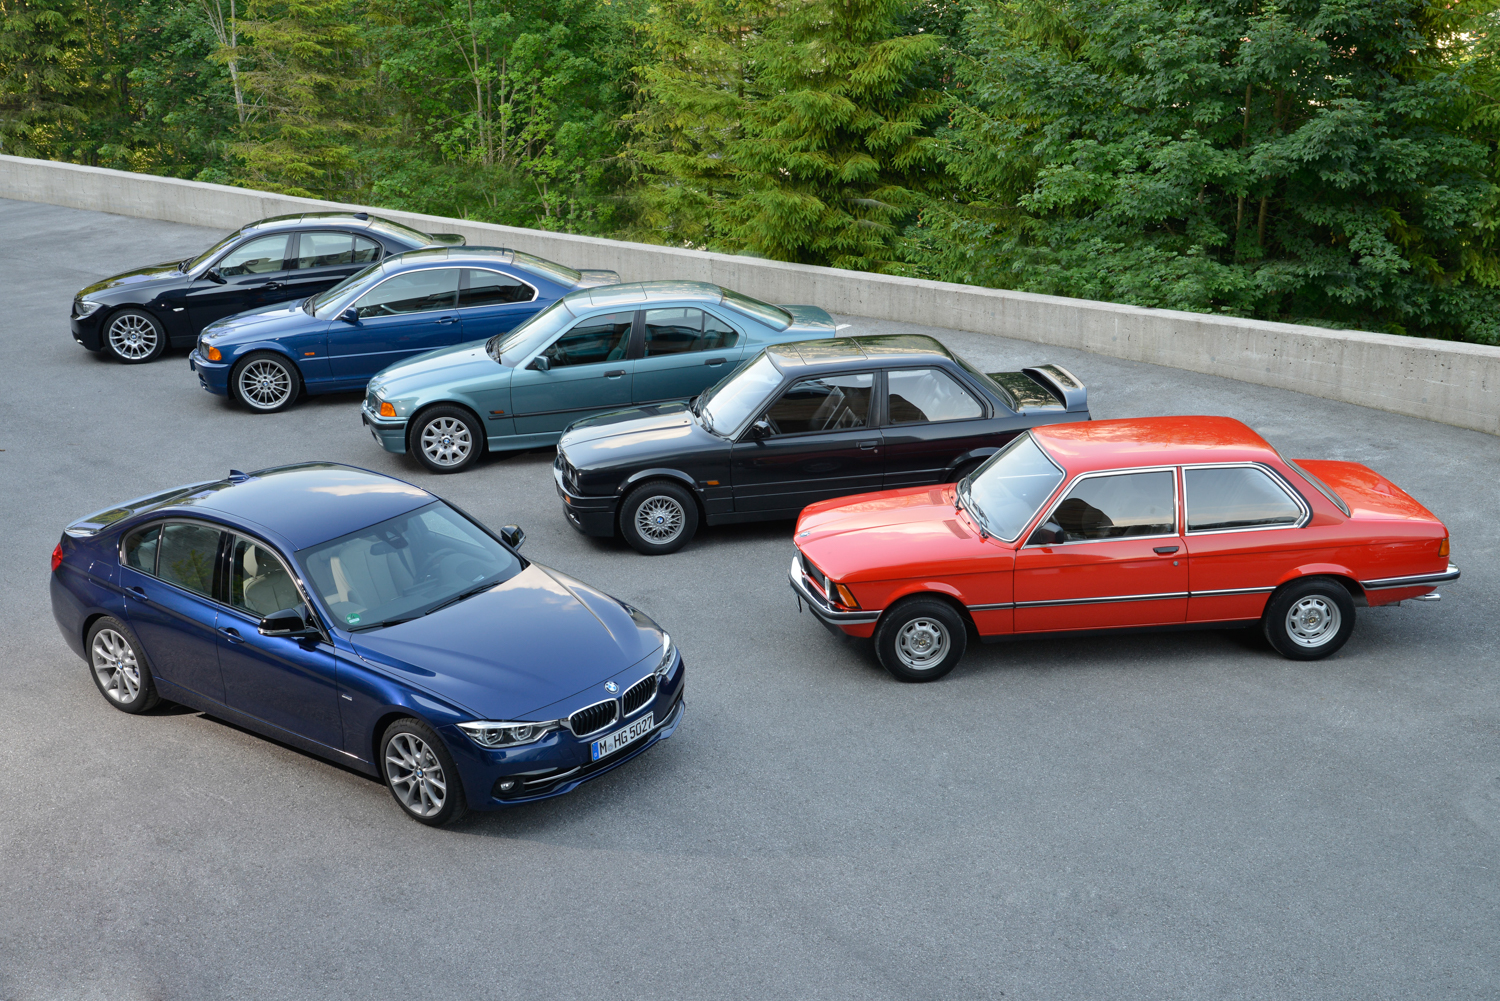 Bmw 3 Series 40 Years Old And Still The Ultimate Driving Machine Ars Technica